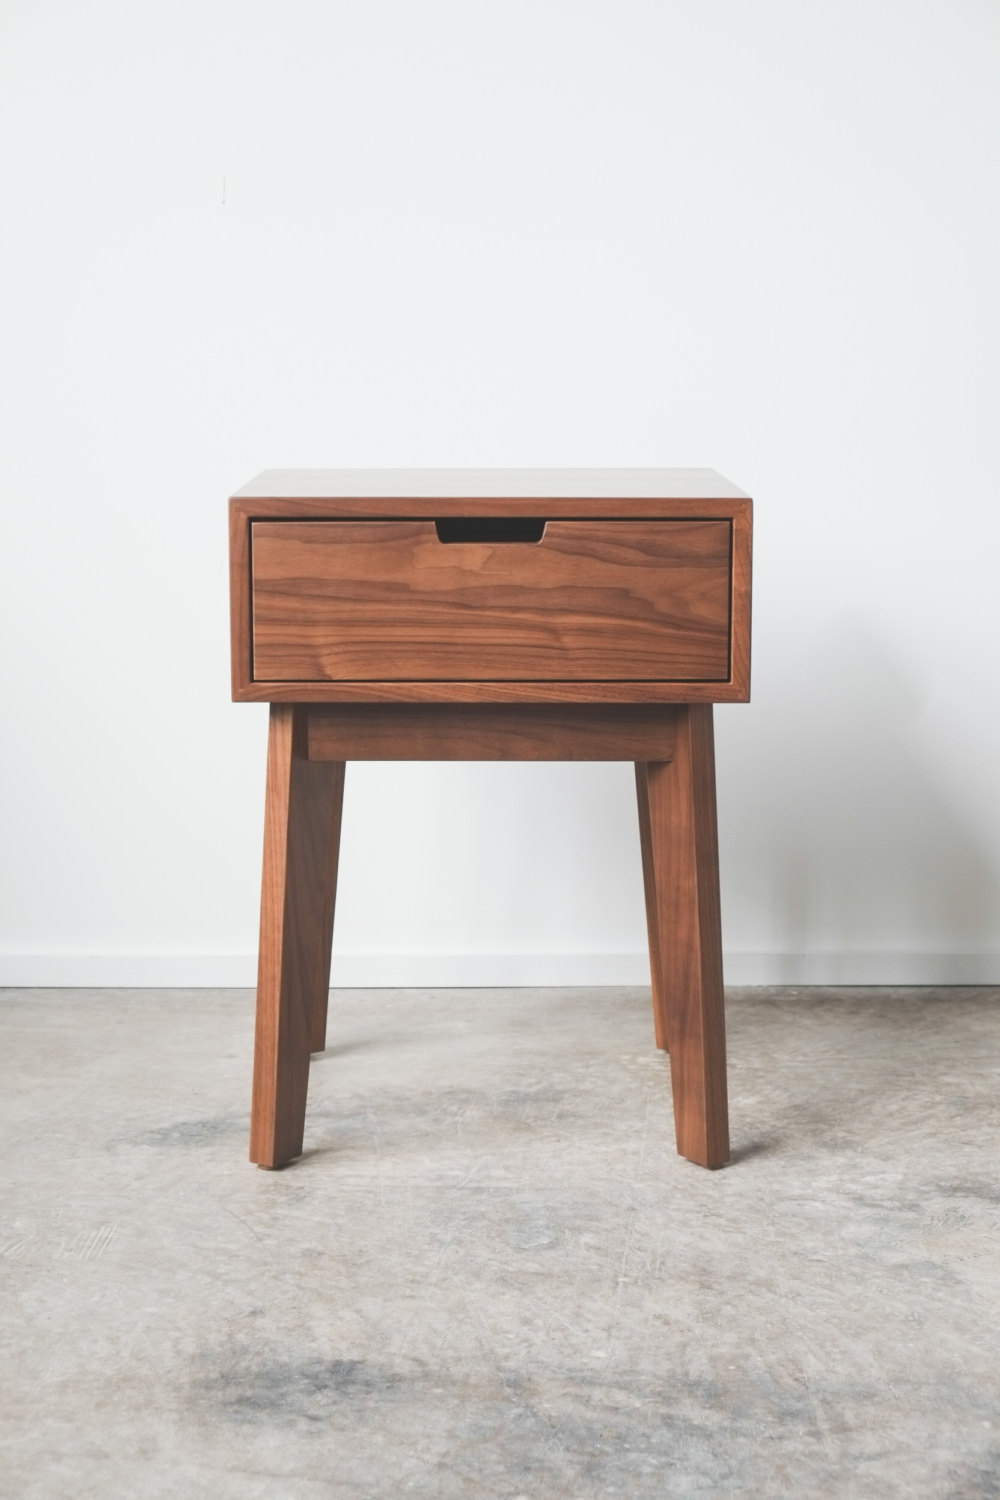 "Solid Walnut Ventura Nightstand / Bedside Table 19"" x 17"" x 25""  HEDGEHOUSE $599"